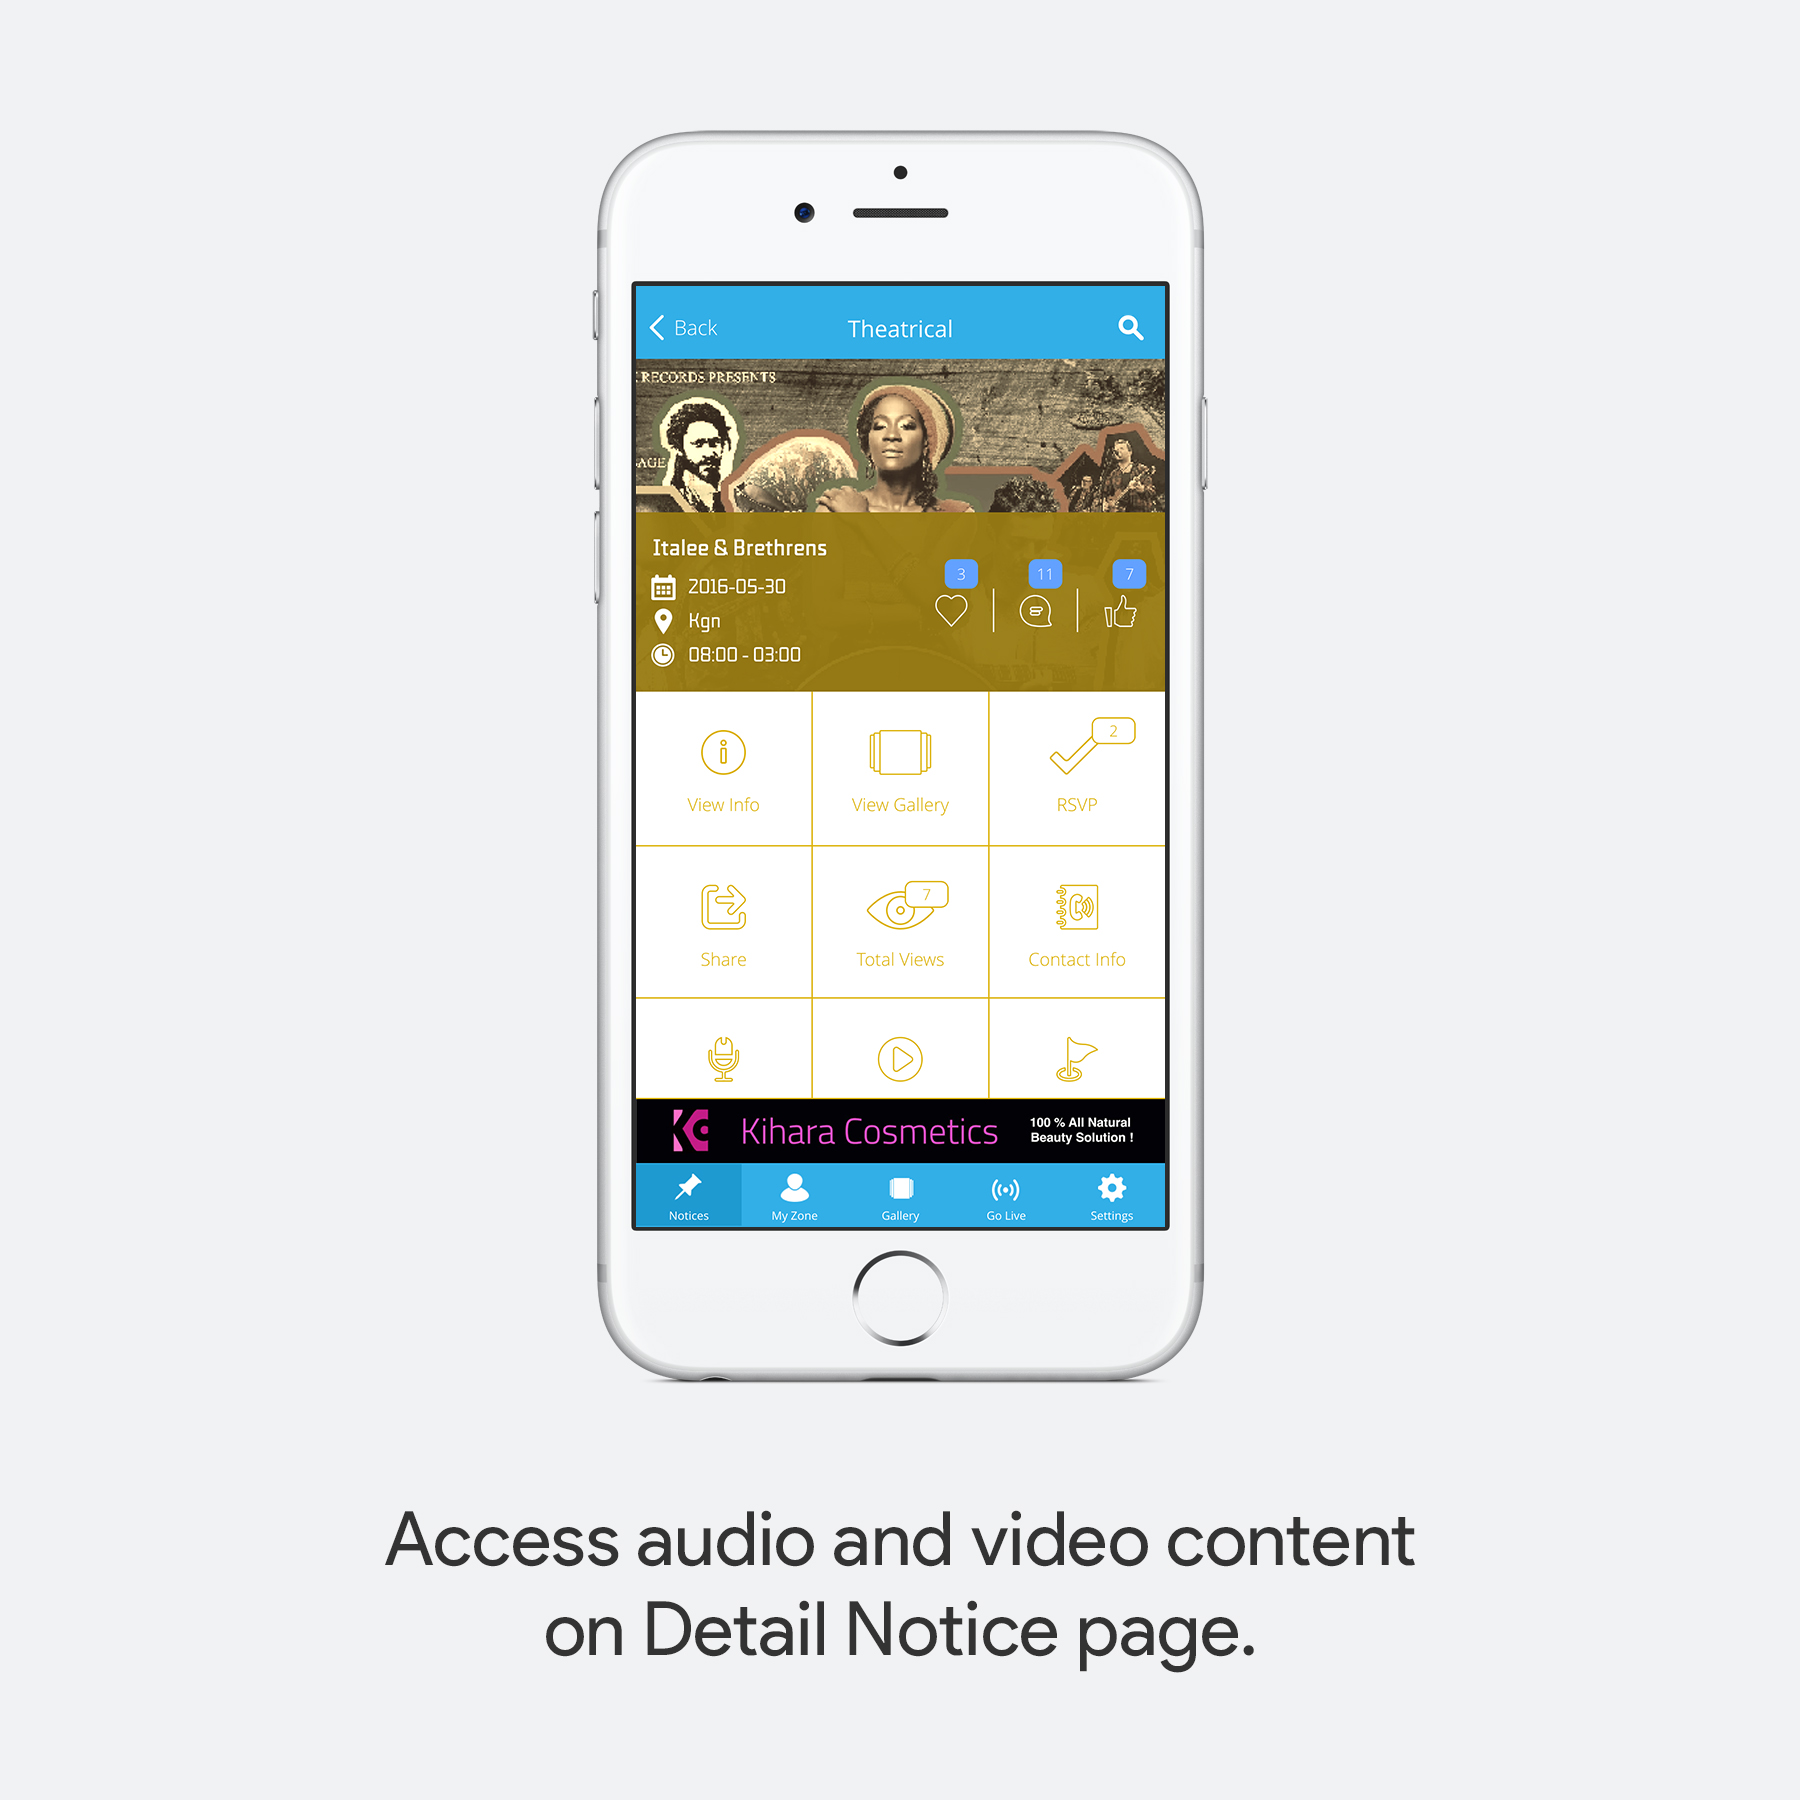 Access audio and video content on Digital Notice page.